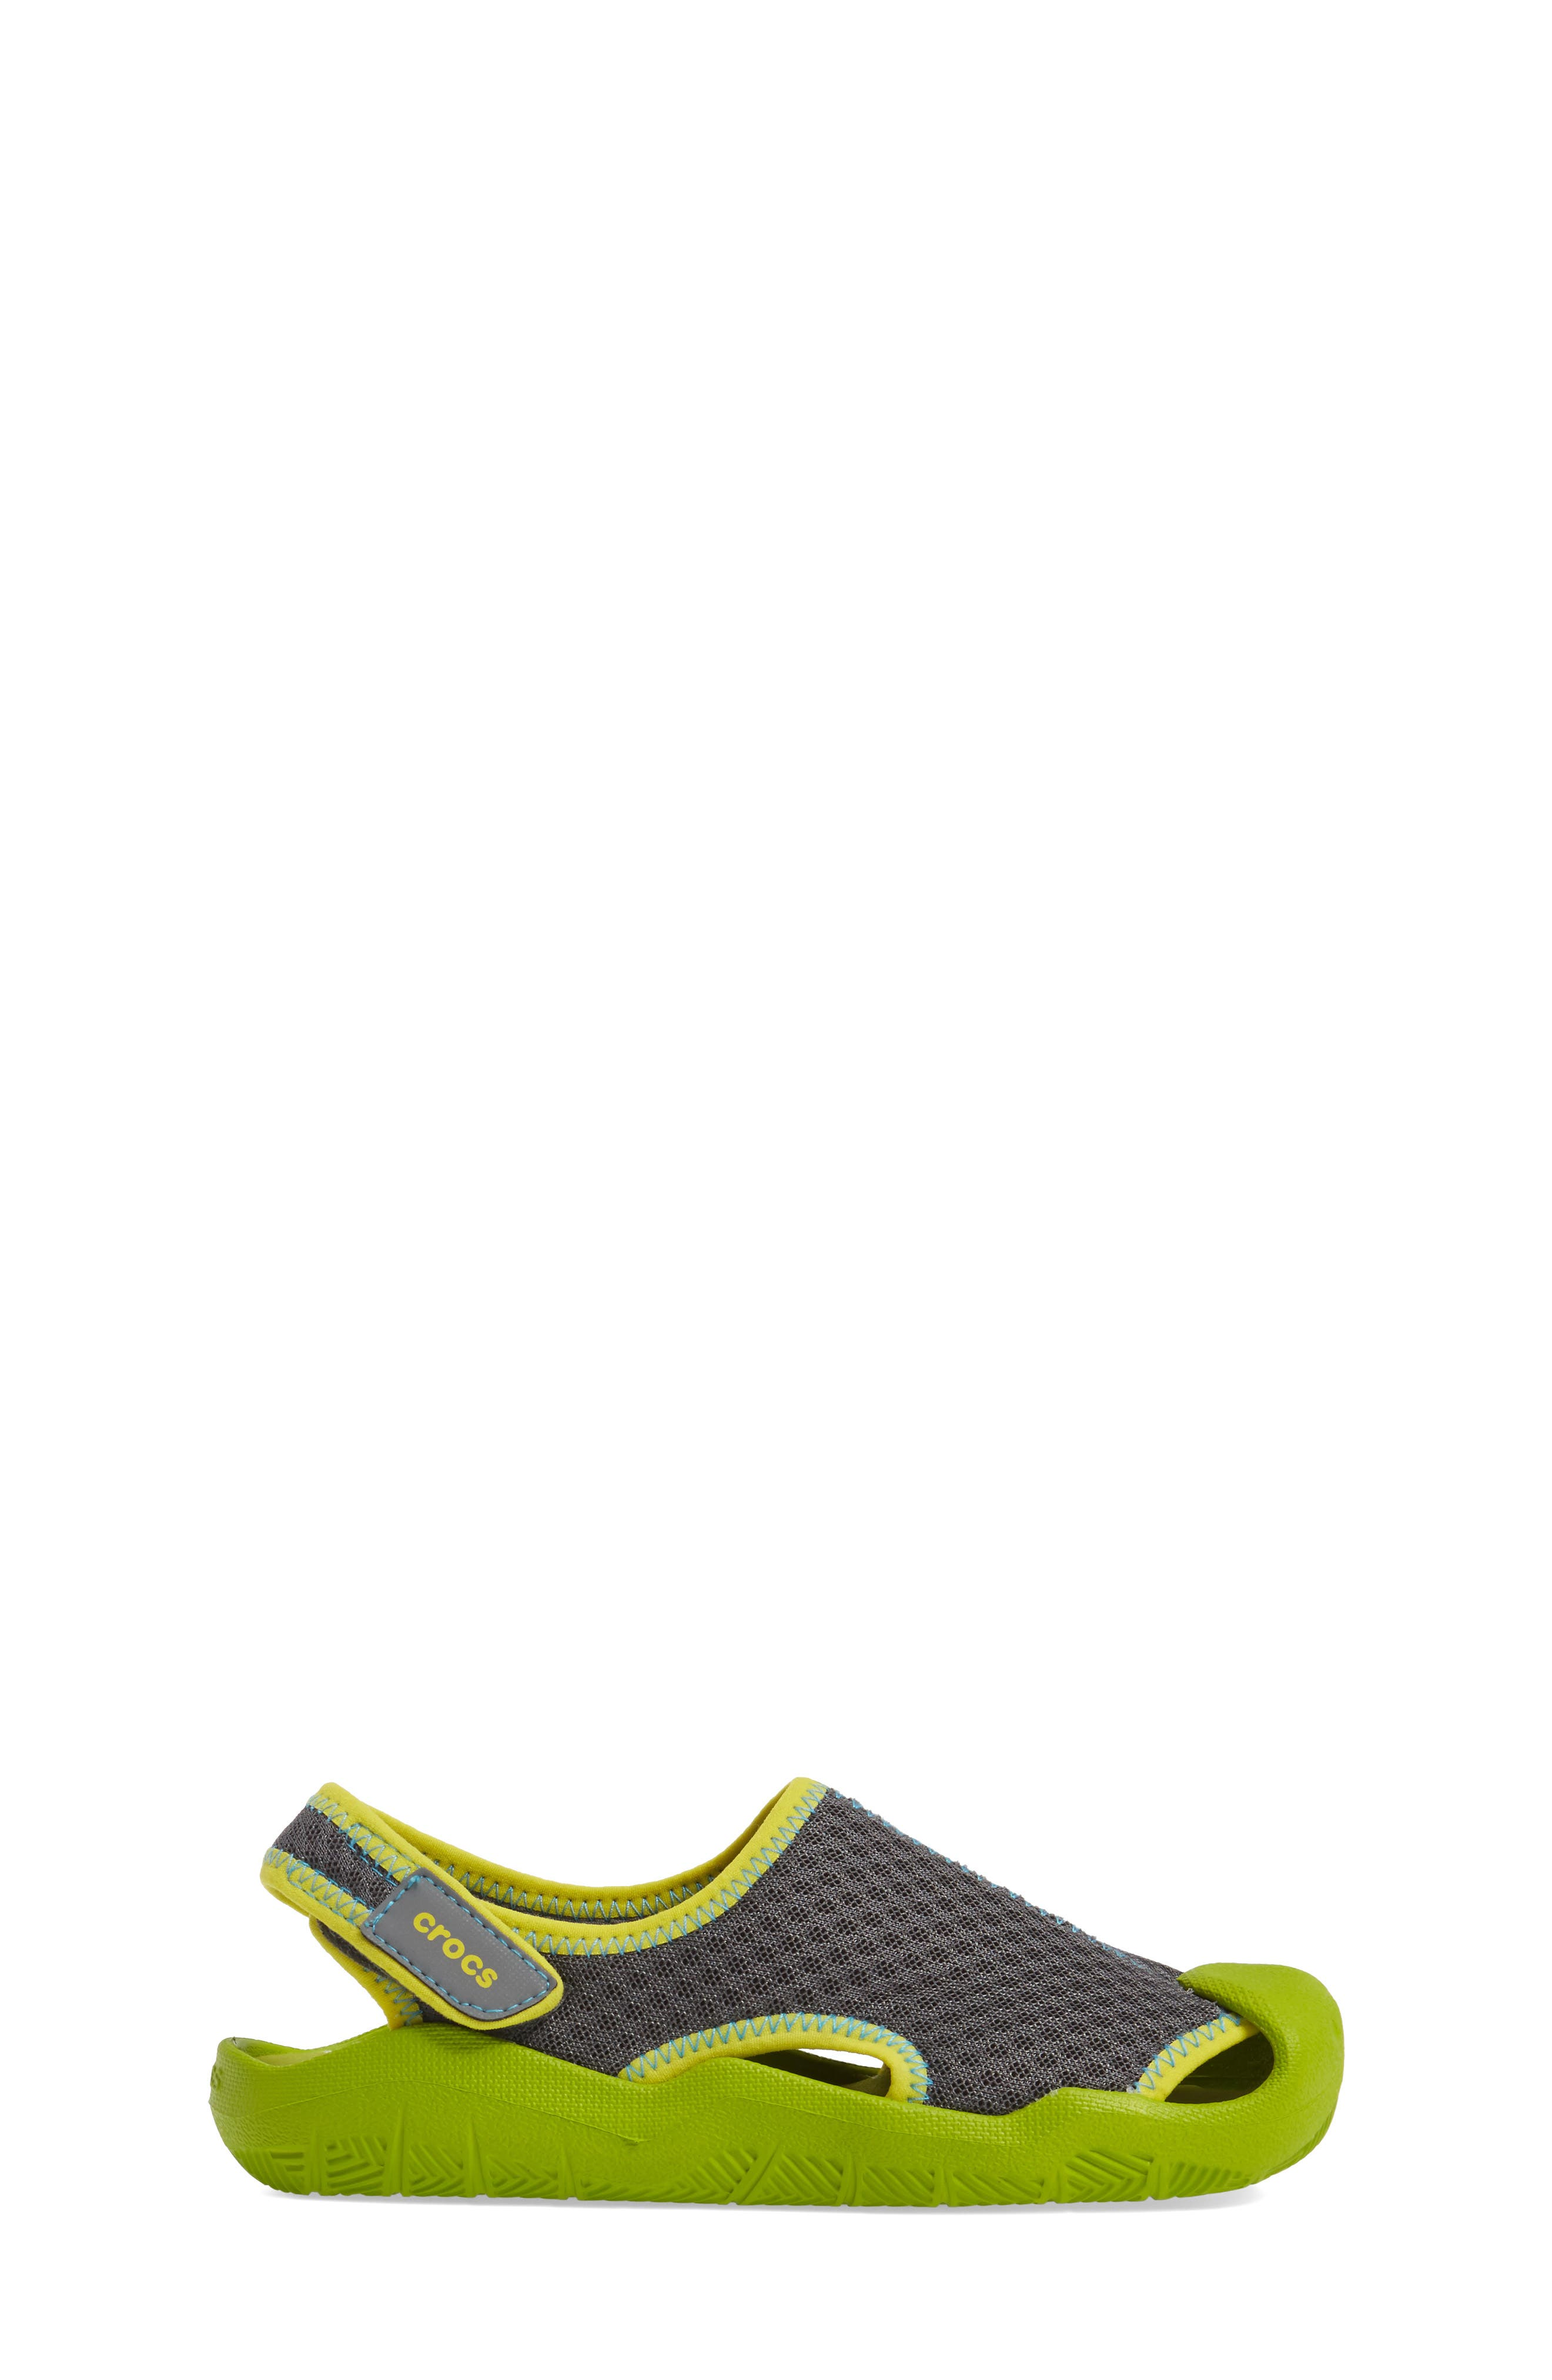 Swiftwater Sandal,                             Alternate thumbnail 14, color,